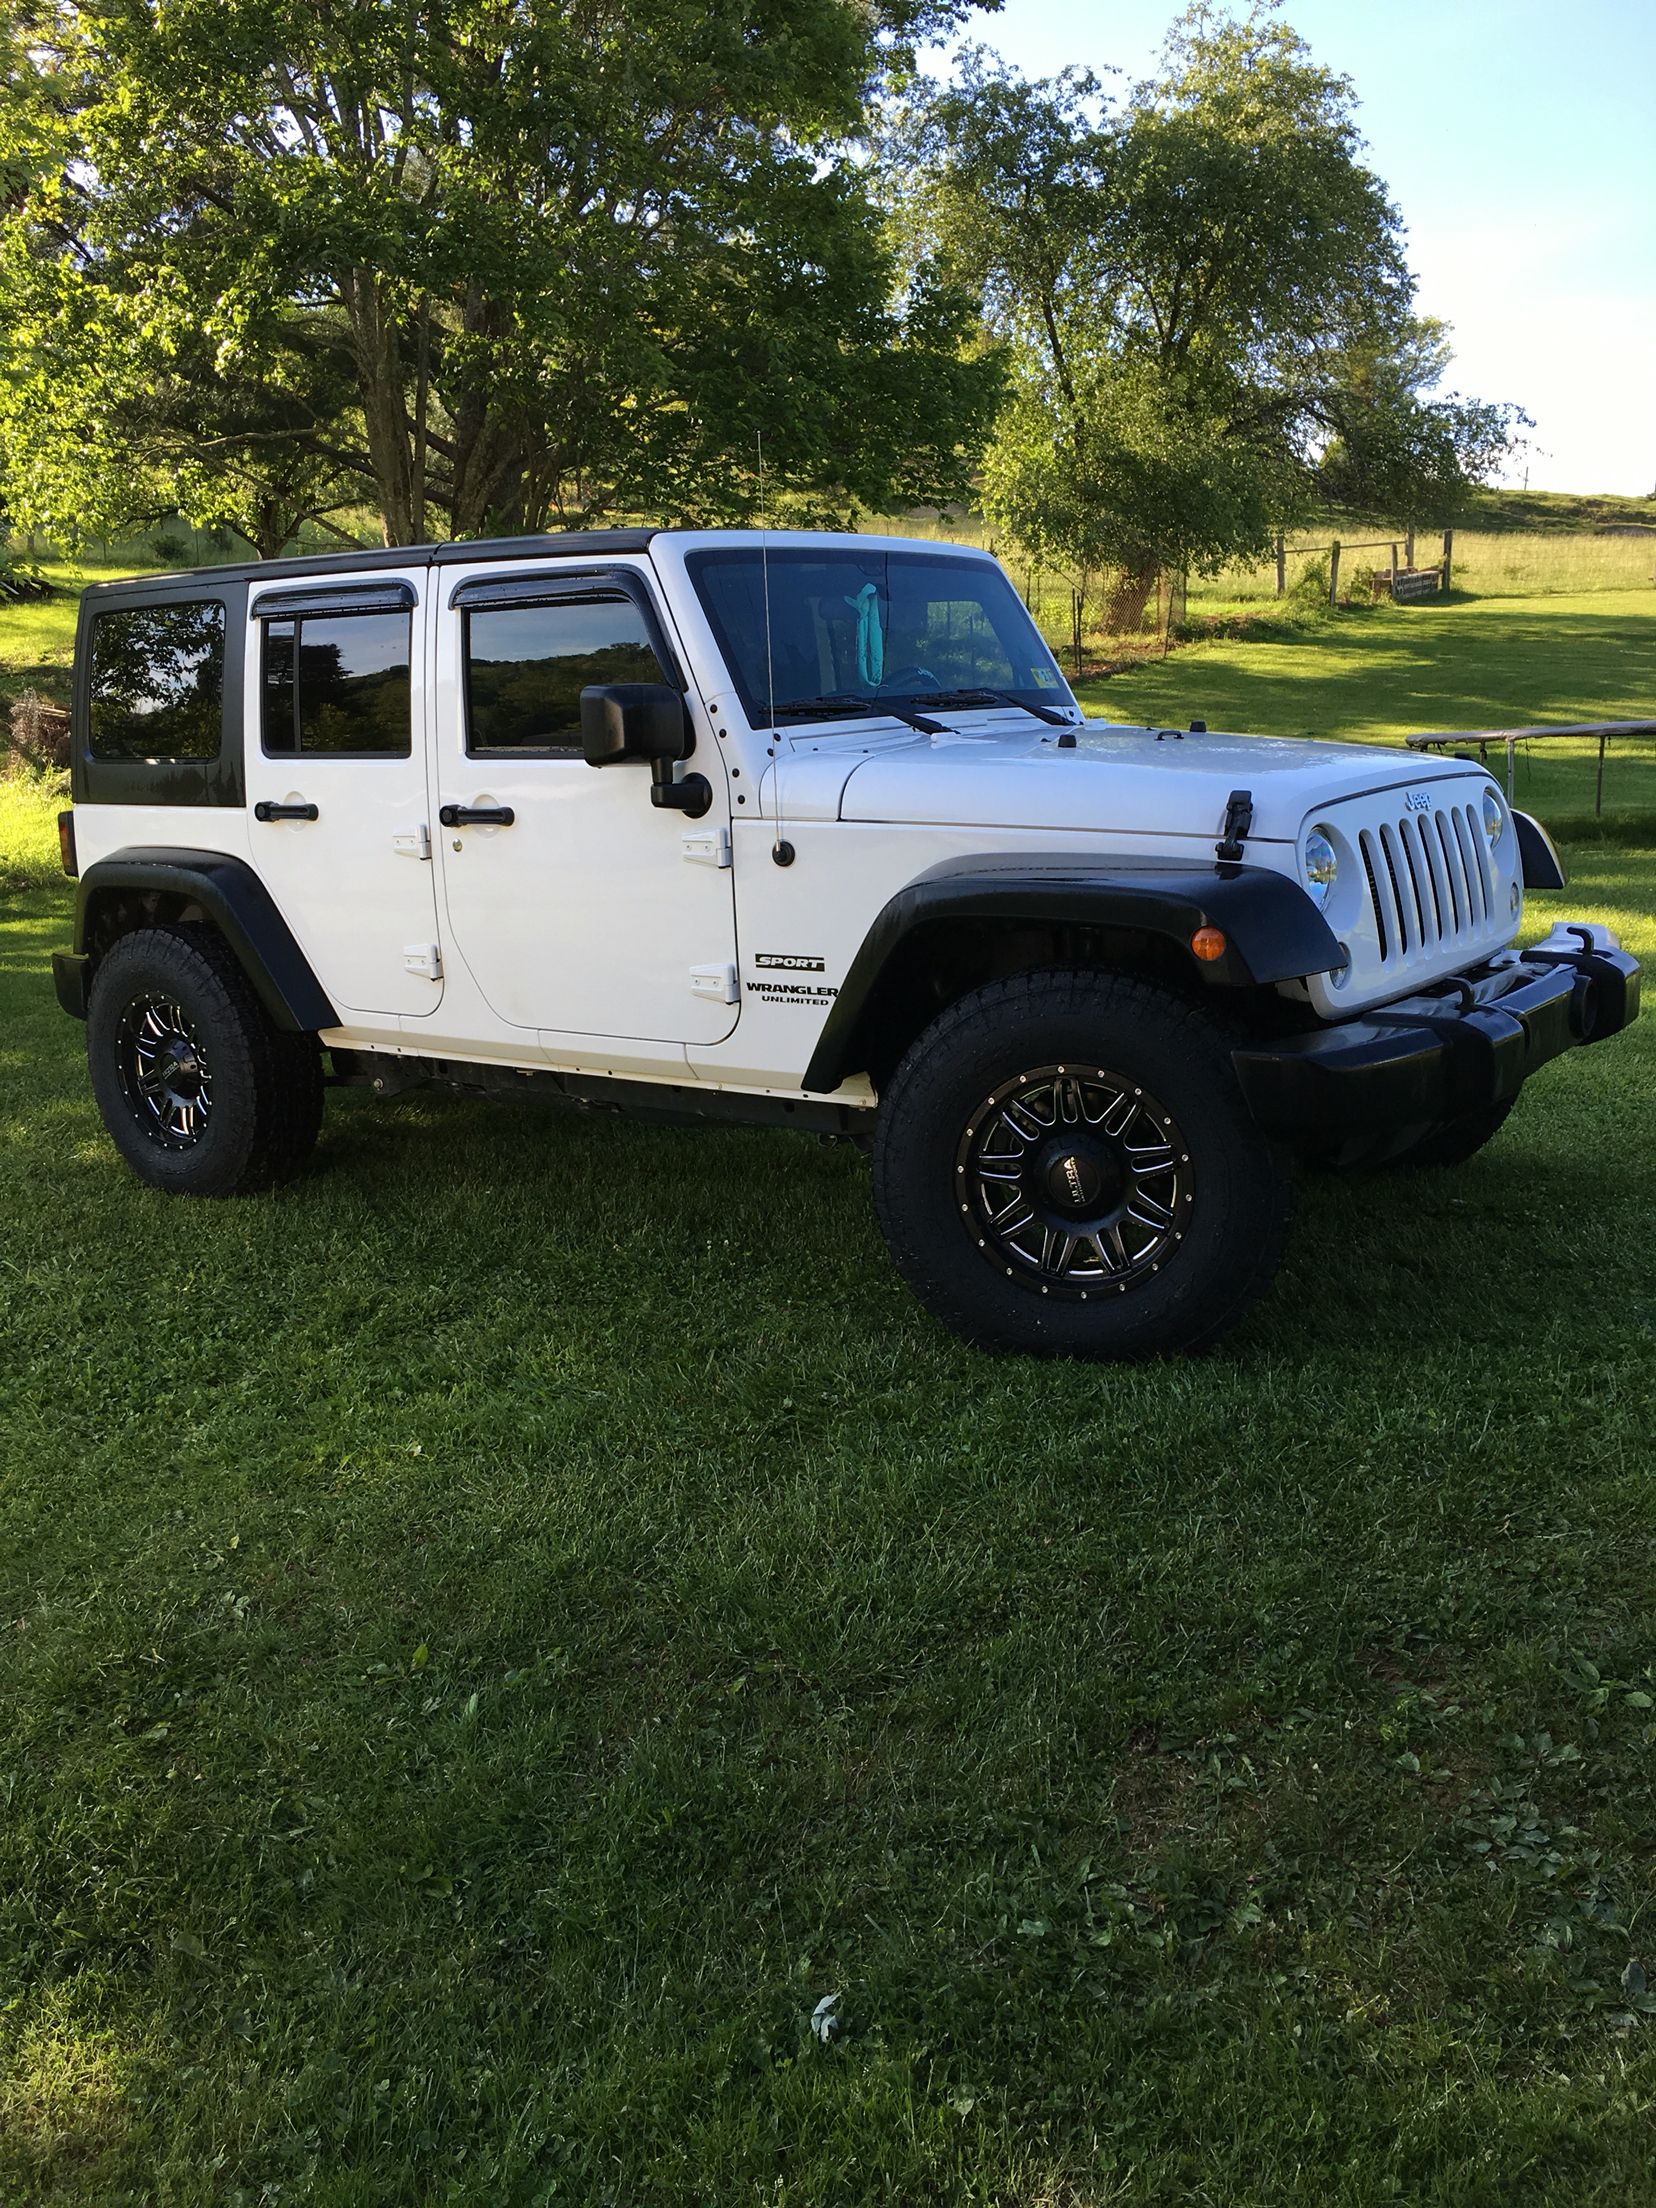 33 Tires On 17 Rims : tires, Unlimited, Wrangler..., 17